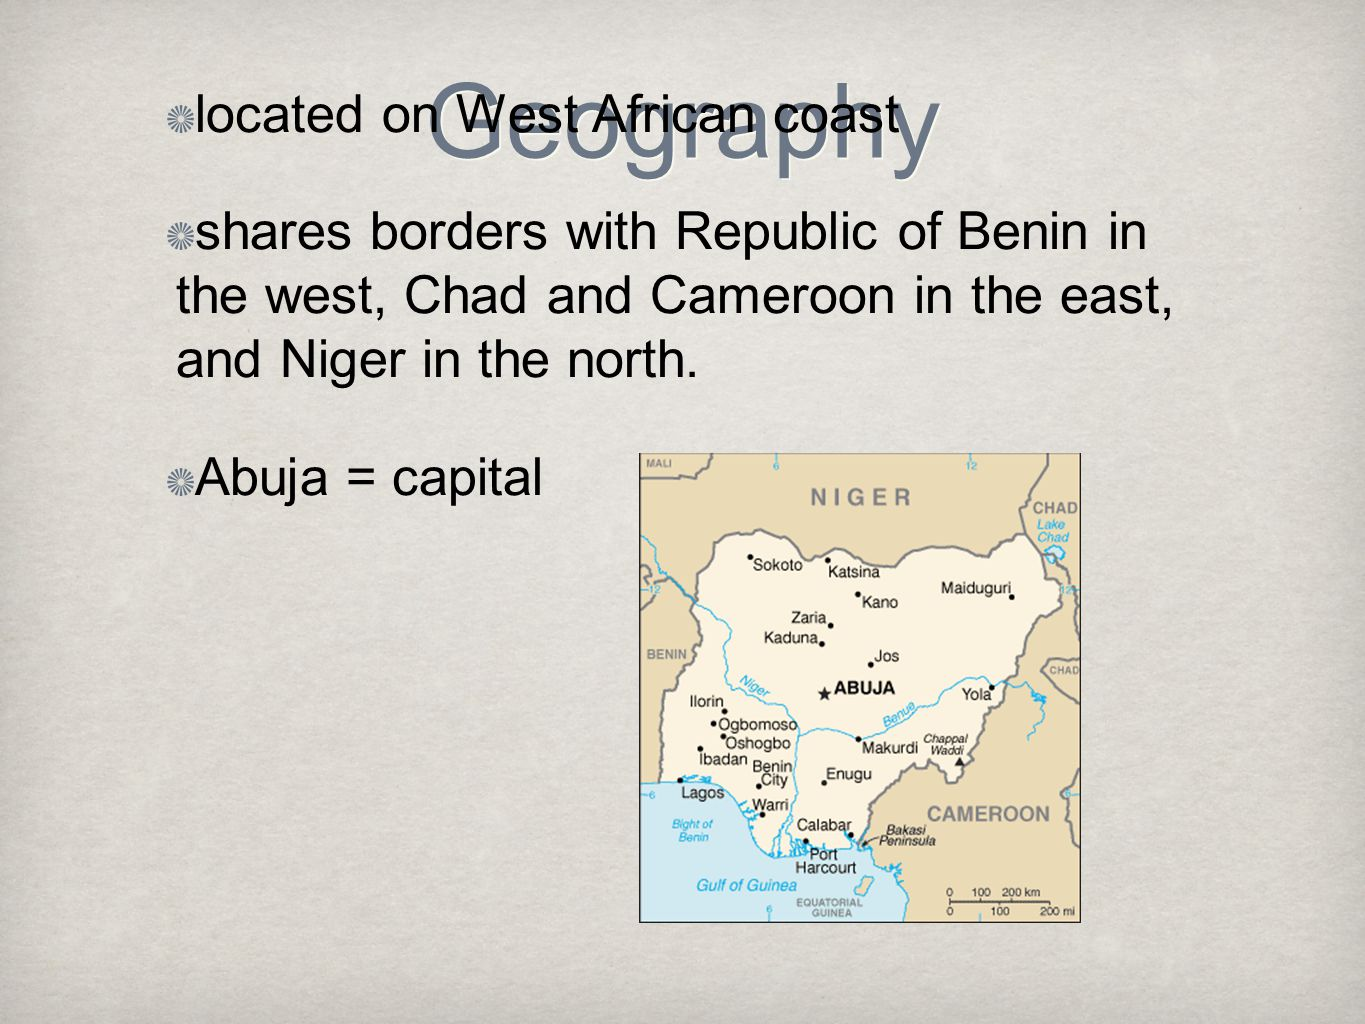 Geography located on West African coast shares borders with Republic of Benin in the west, Chad and Cameroon in the east, and Niger in the north.